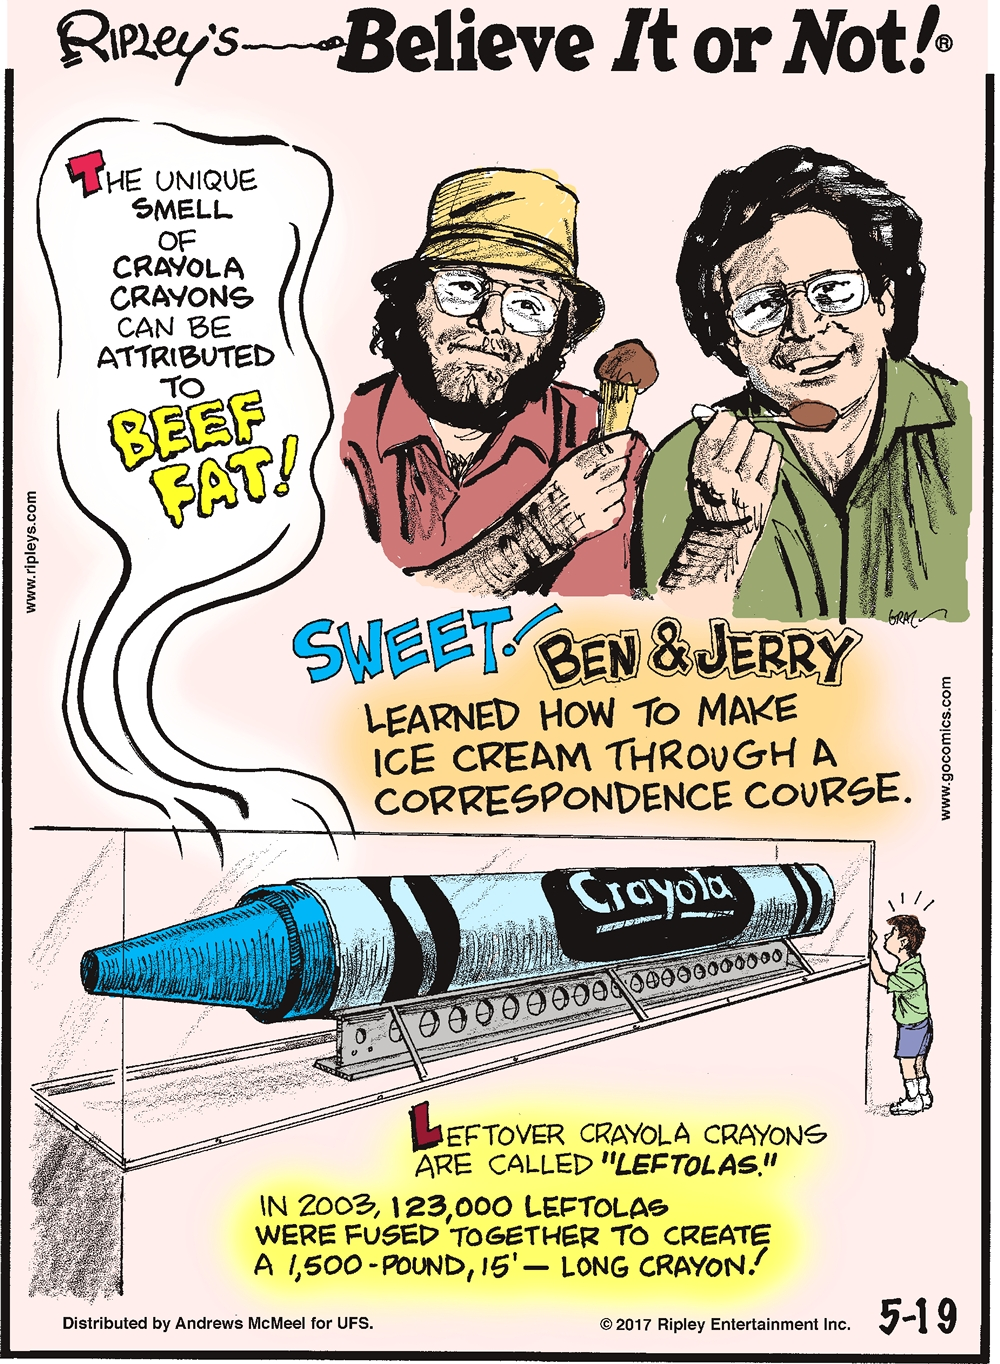 "The unique smell of Crayola Crayons can be attributed to beef fat!-------------------- Sweet! Ben & Jerry learned how to make ice cream through a correspondence course.-------------------- Leftover Crayola Crayons are called ""leftolas."" In 2003, 123,000 leftolas were fused together to create a 1,500-pound, 15' - long crayon!"